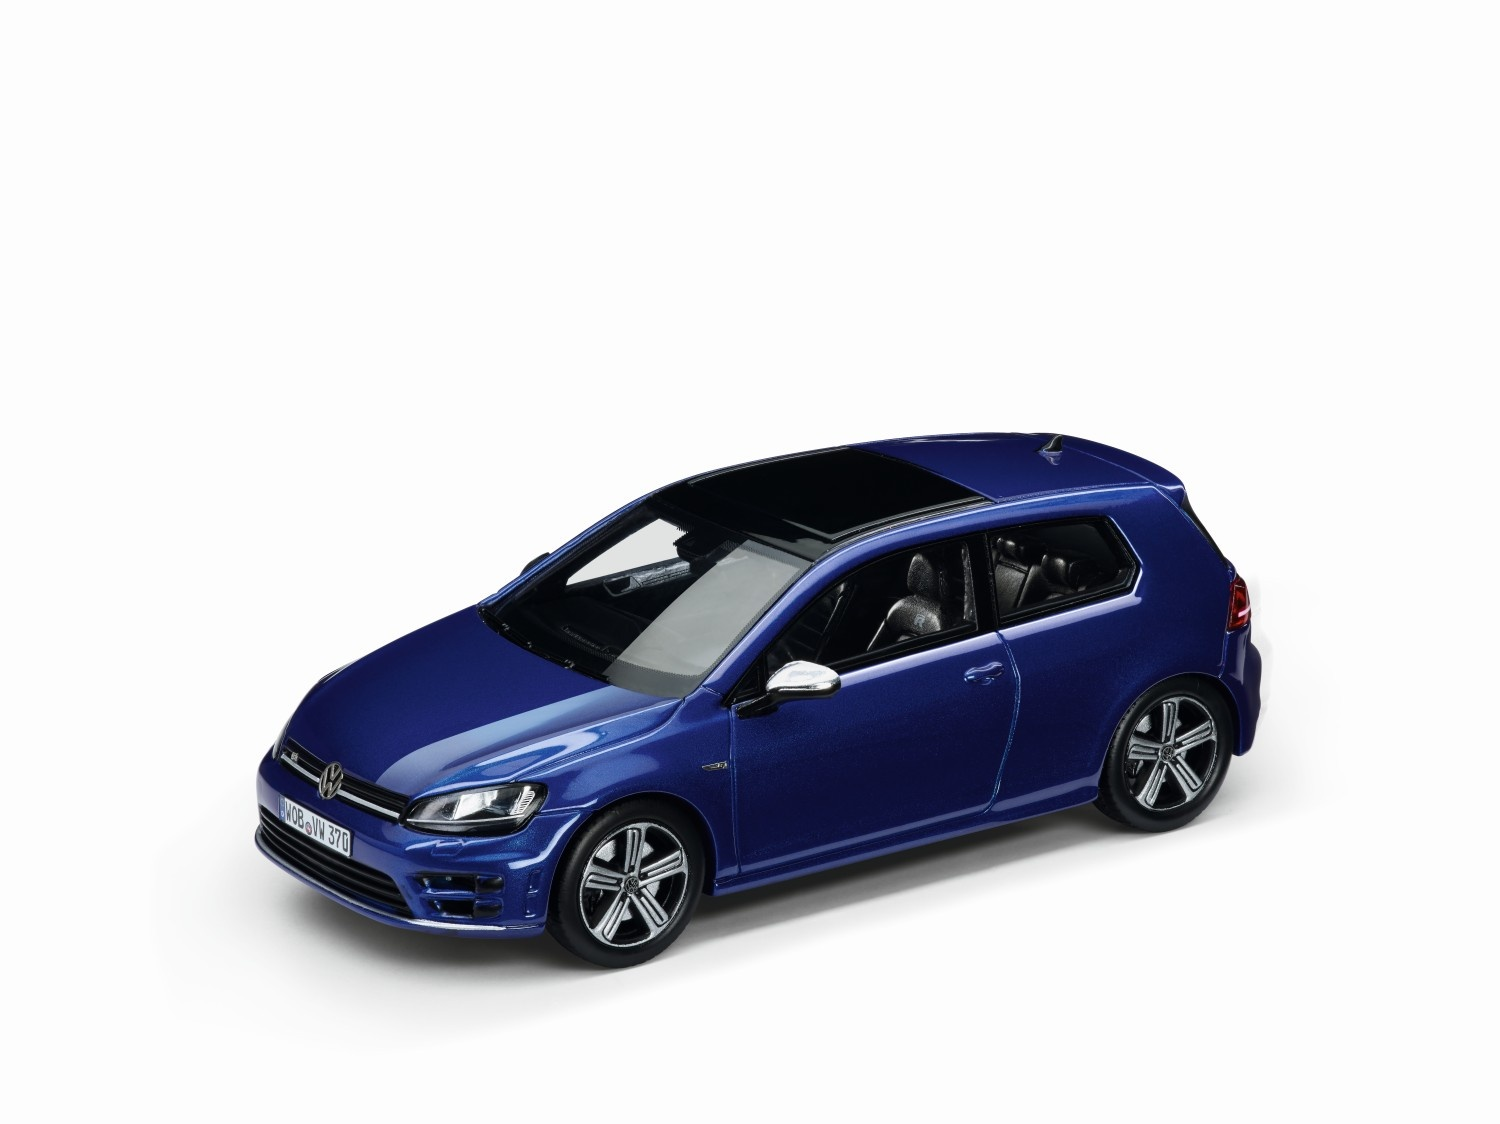 Golf VII R, escala 1:43